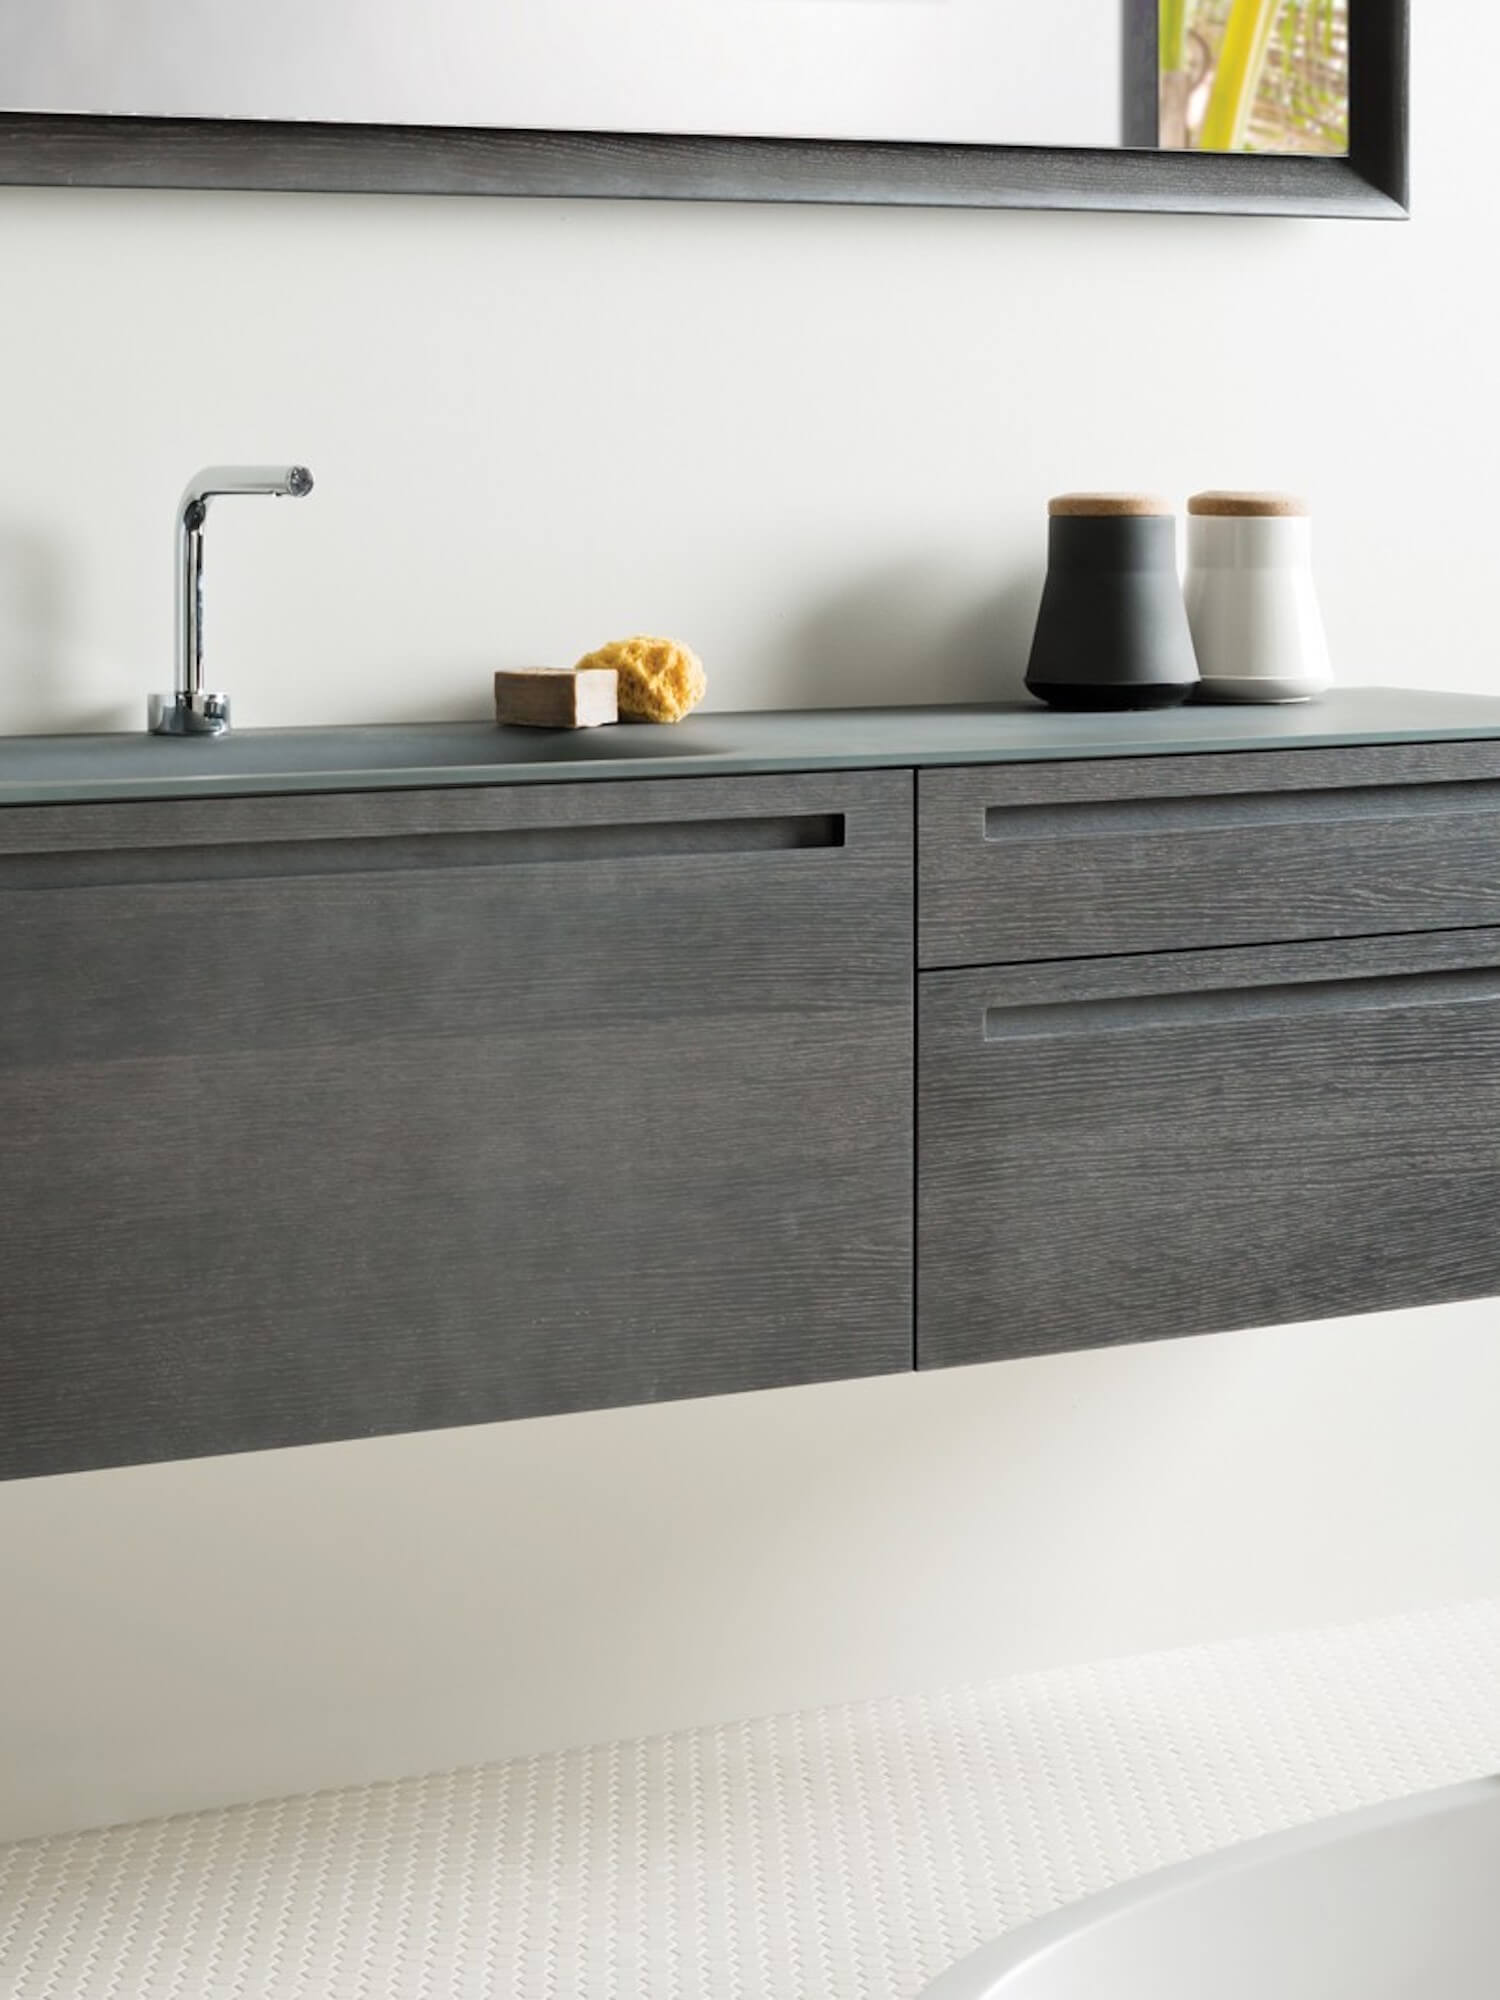 est living falper via veneto vetro integrated cabinets and basins via veneto vetro 7